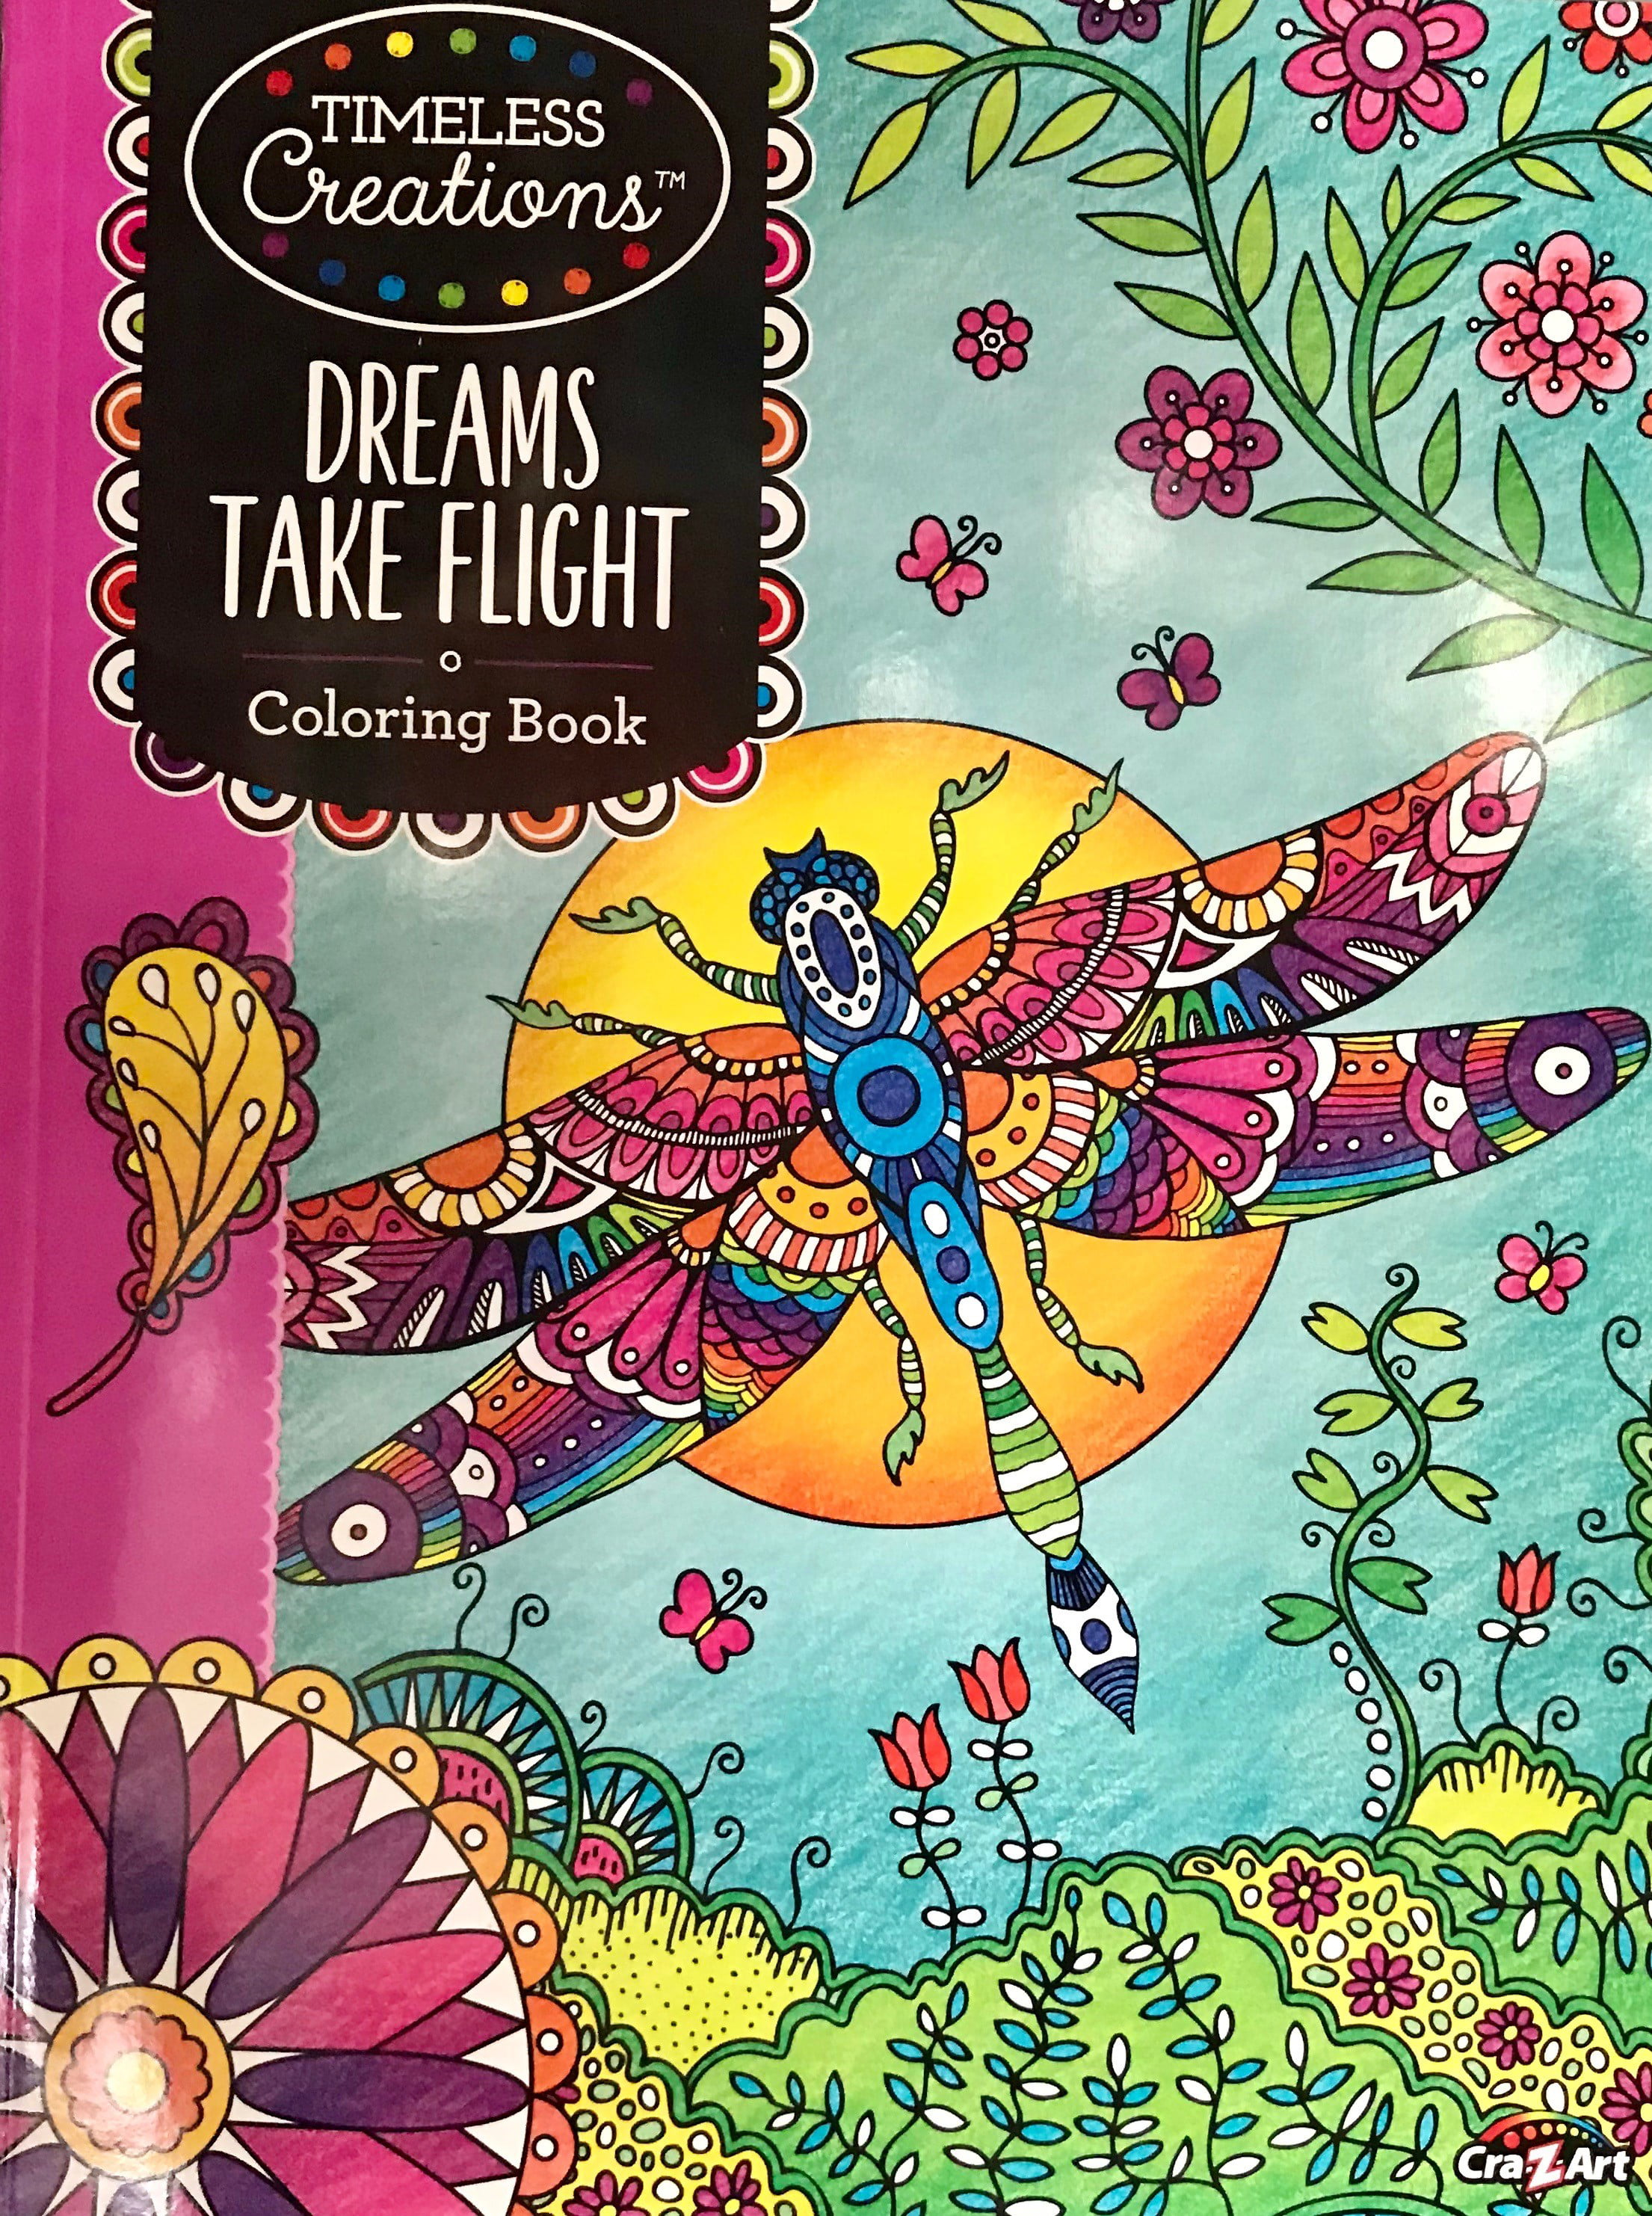 Timeless Creations Dreams Take Flight 64 Page Premium